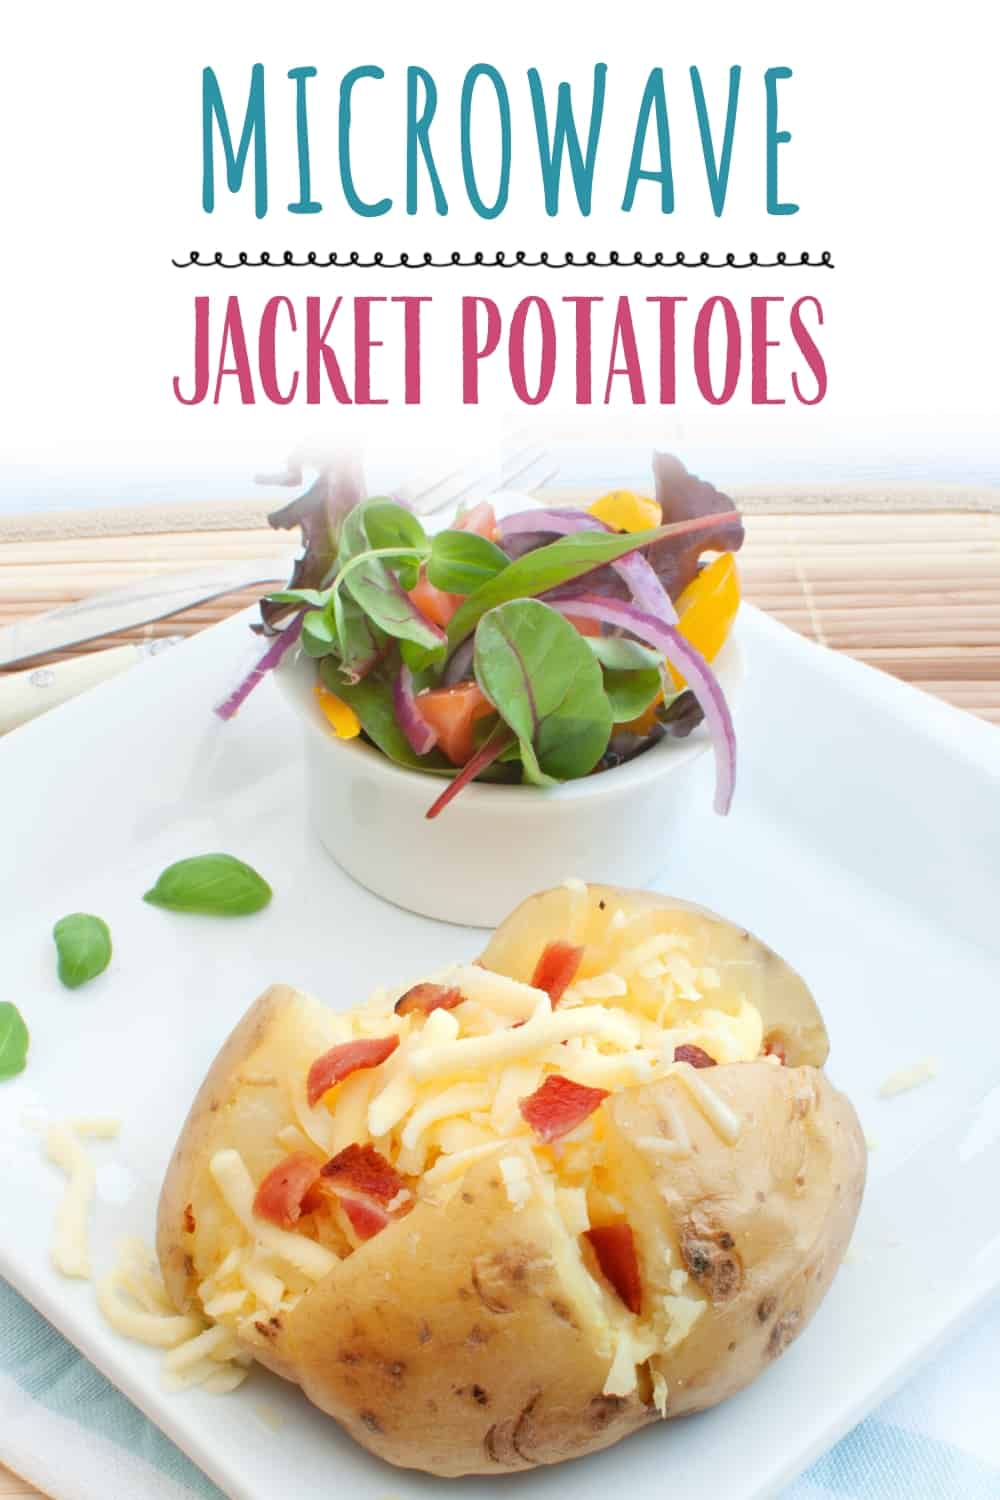 Cook Jacket Potatoes In The Microwave